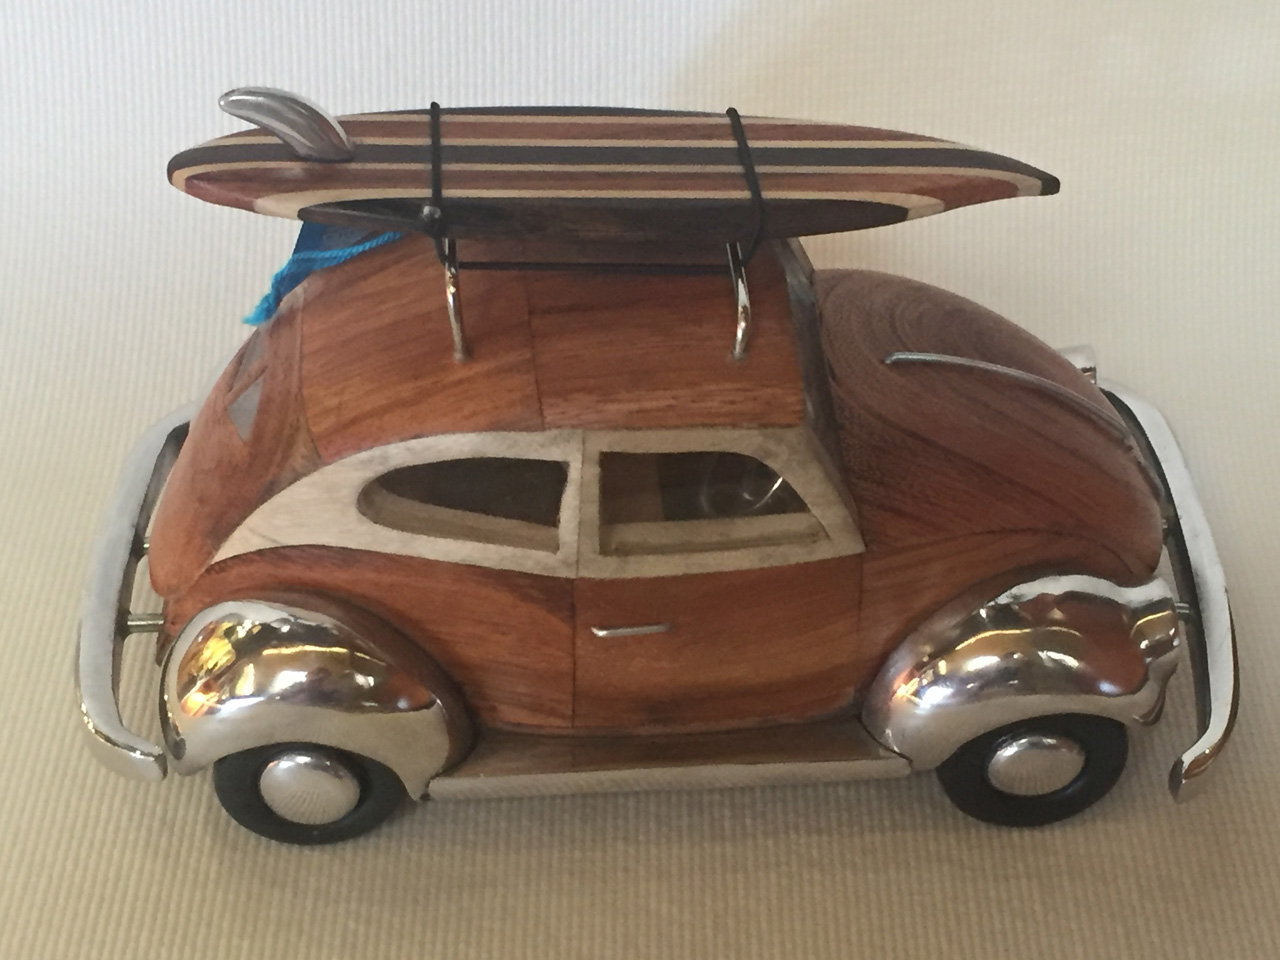 VW Bug by Doug Miller wood and metal model with surfboard side view